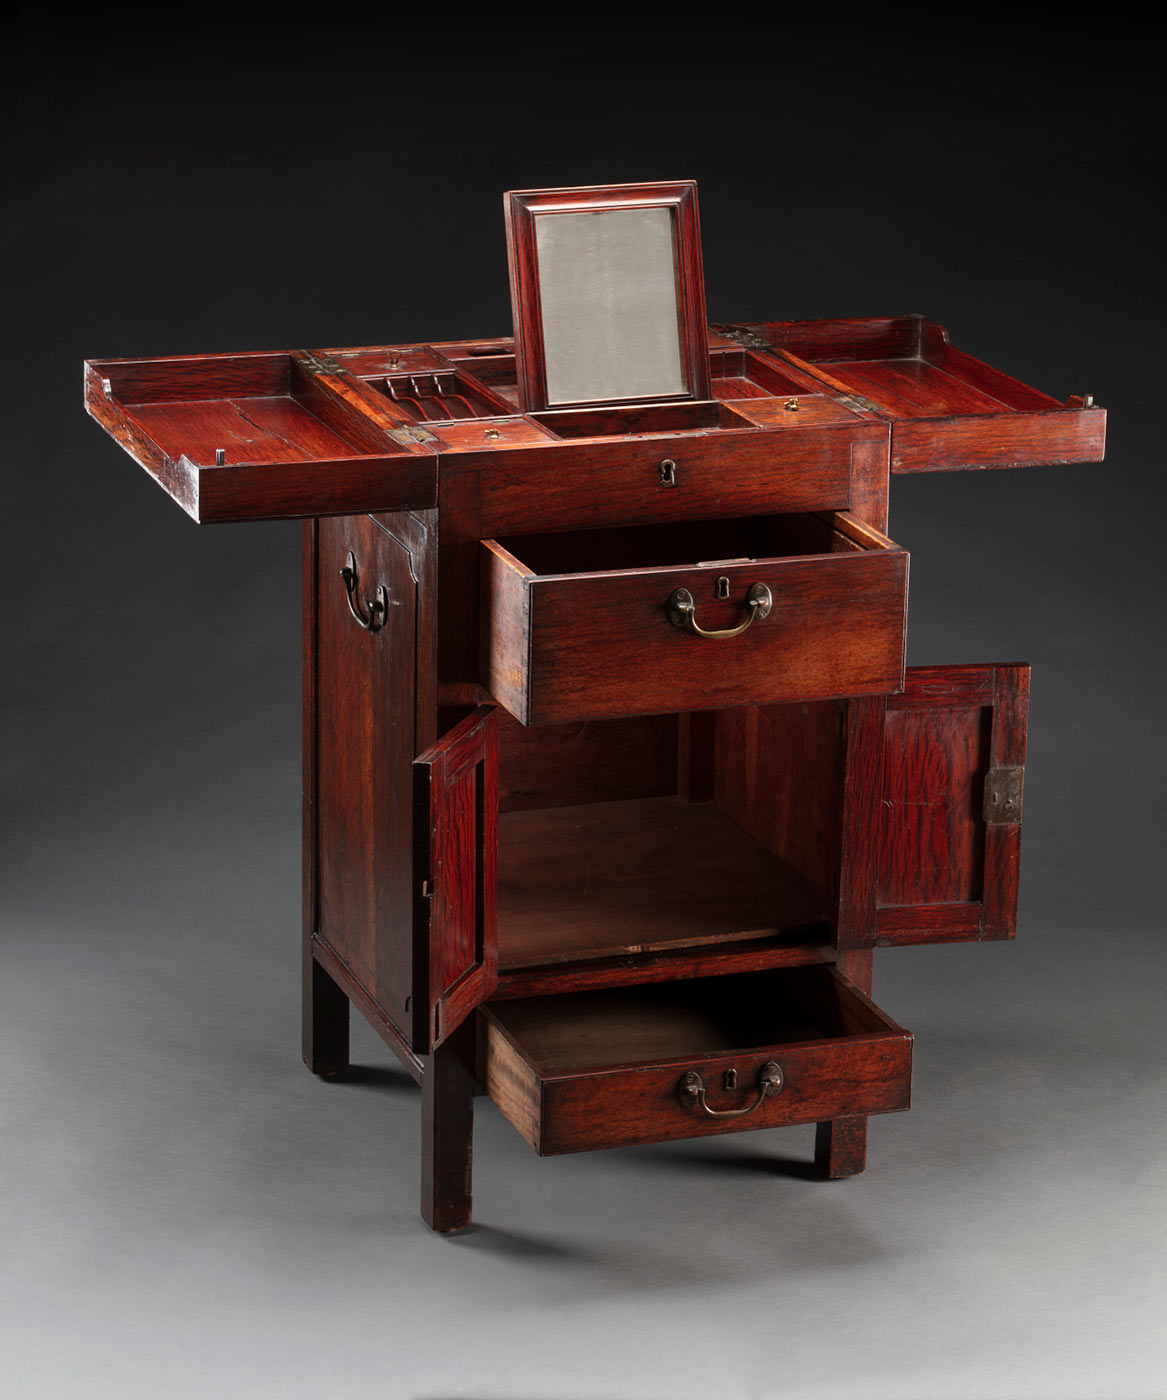 Wooden dresser table with multiple compartments. - click to view larger image